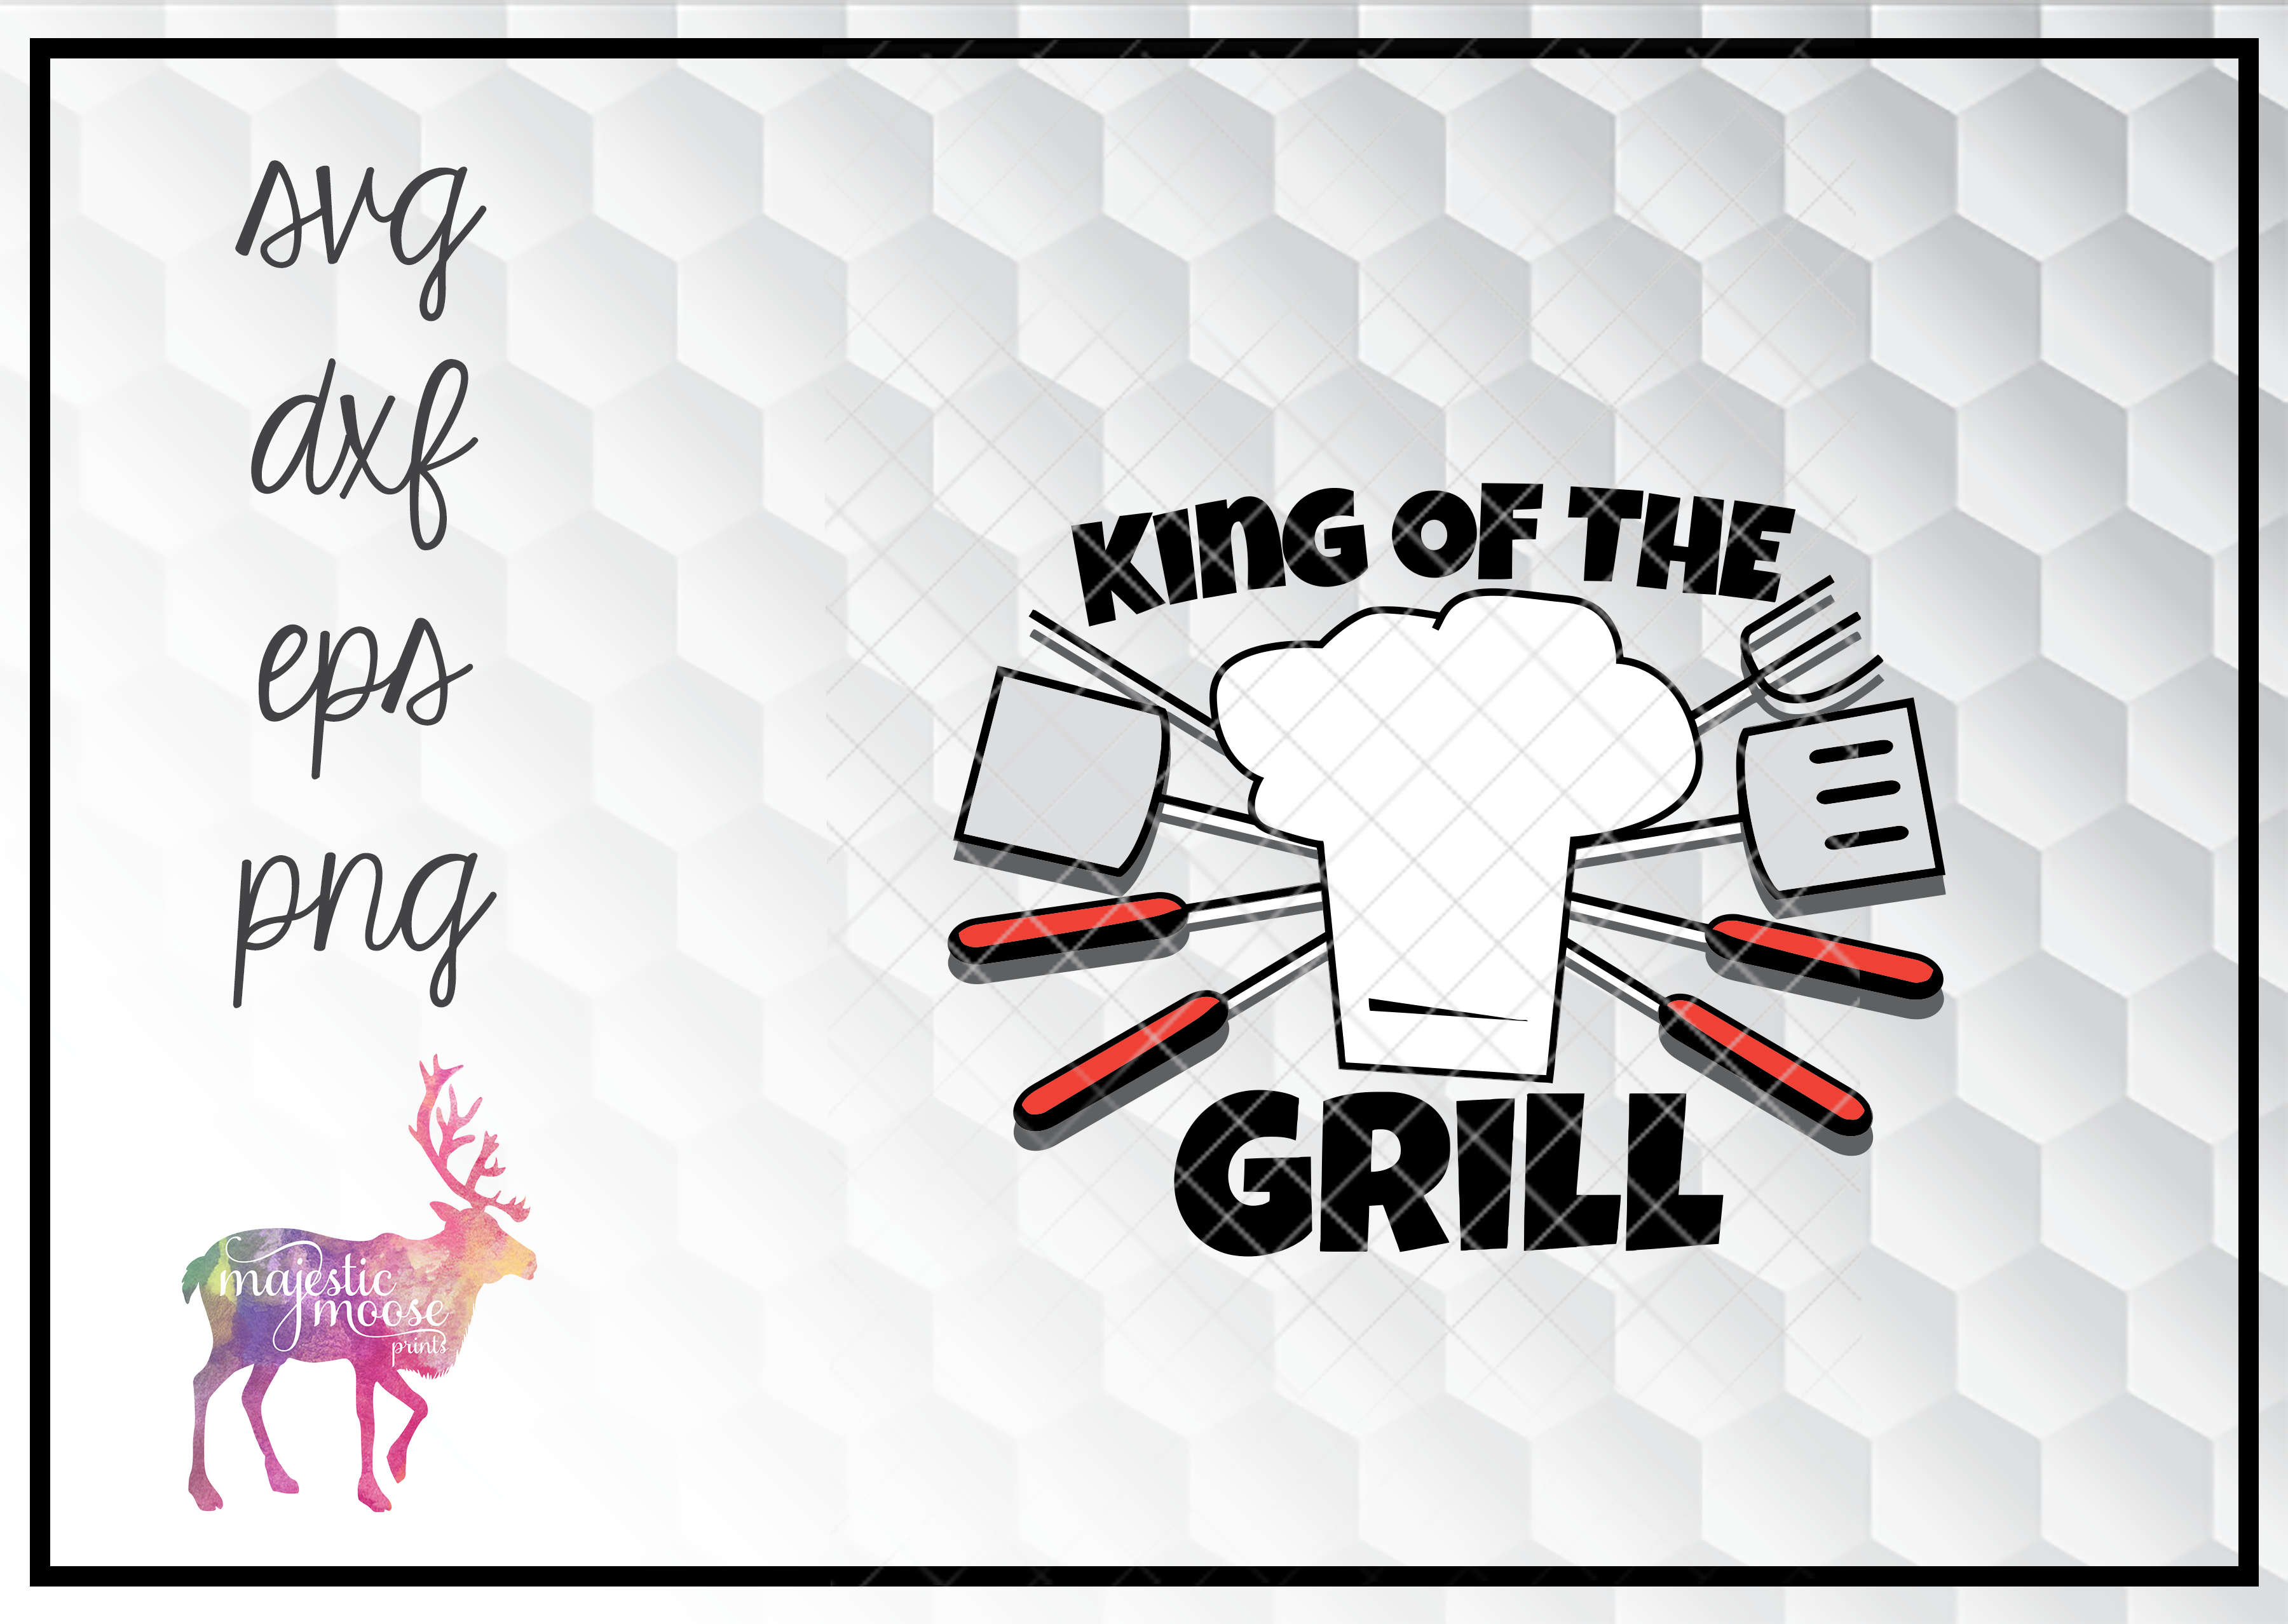 Free The food my food eats for breakfast. King Of The Grill Father S Day Svg Graphic By Majesticmooseprints Creative Fabrica SVG, PNG, EPS, DXF File